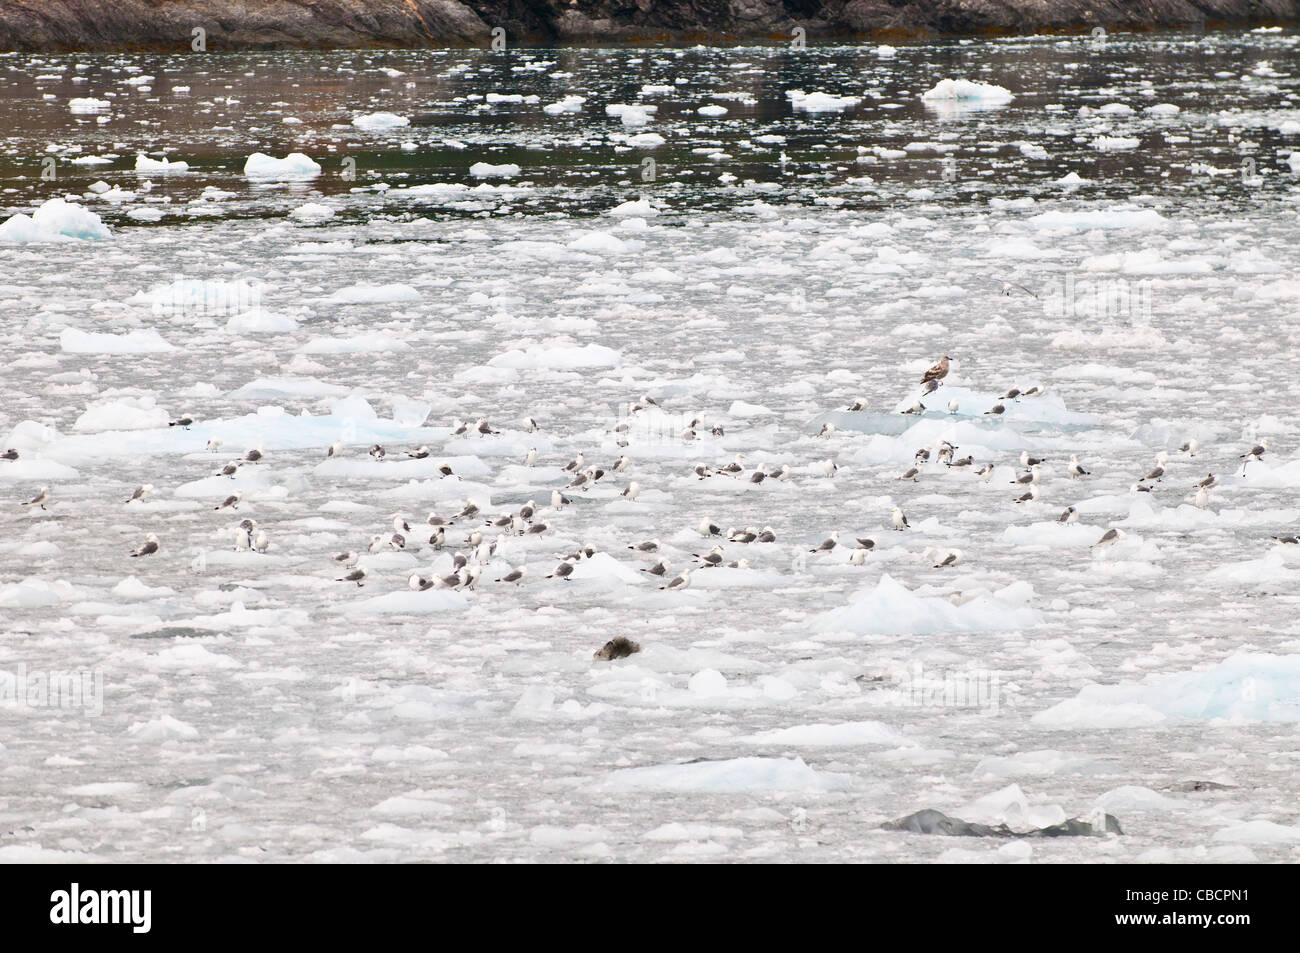 Seabirds sitting on glacial ice, Holgate Glacier, Kenai Fjords National Park, Seward, Alaska - Stock Image